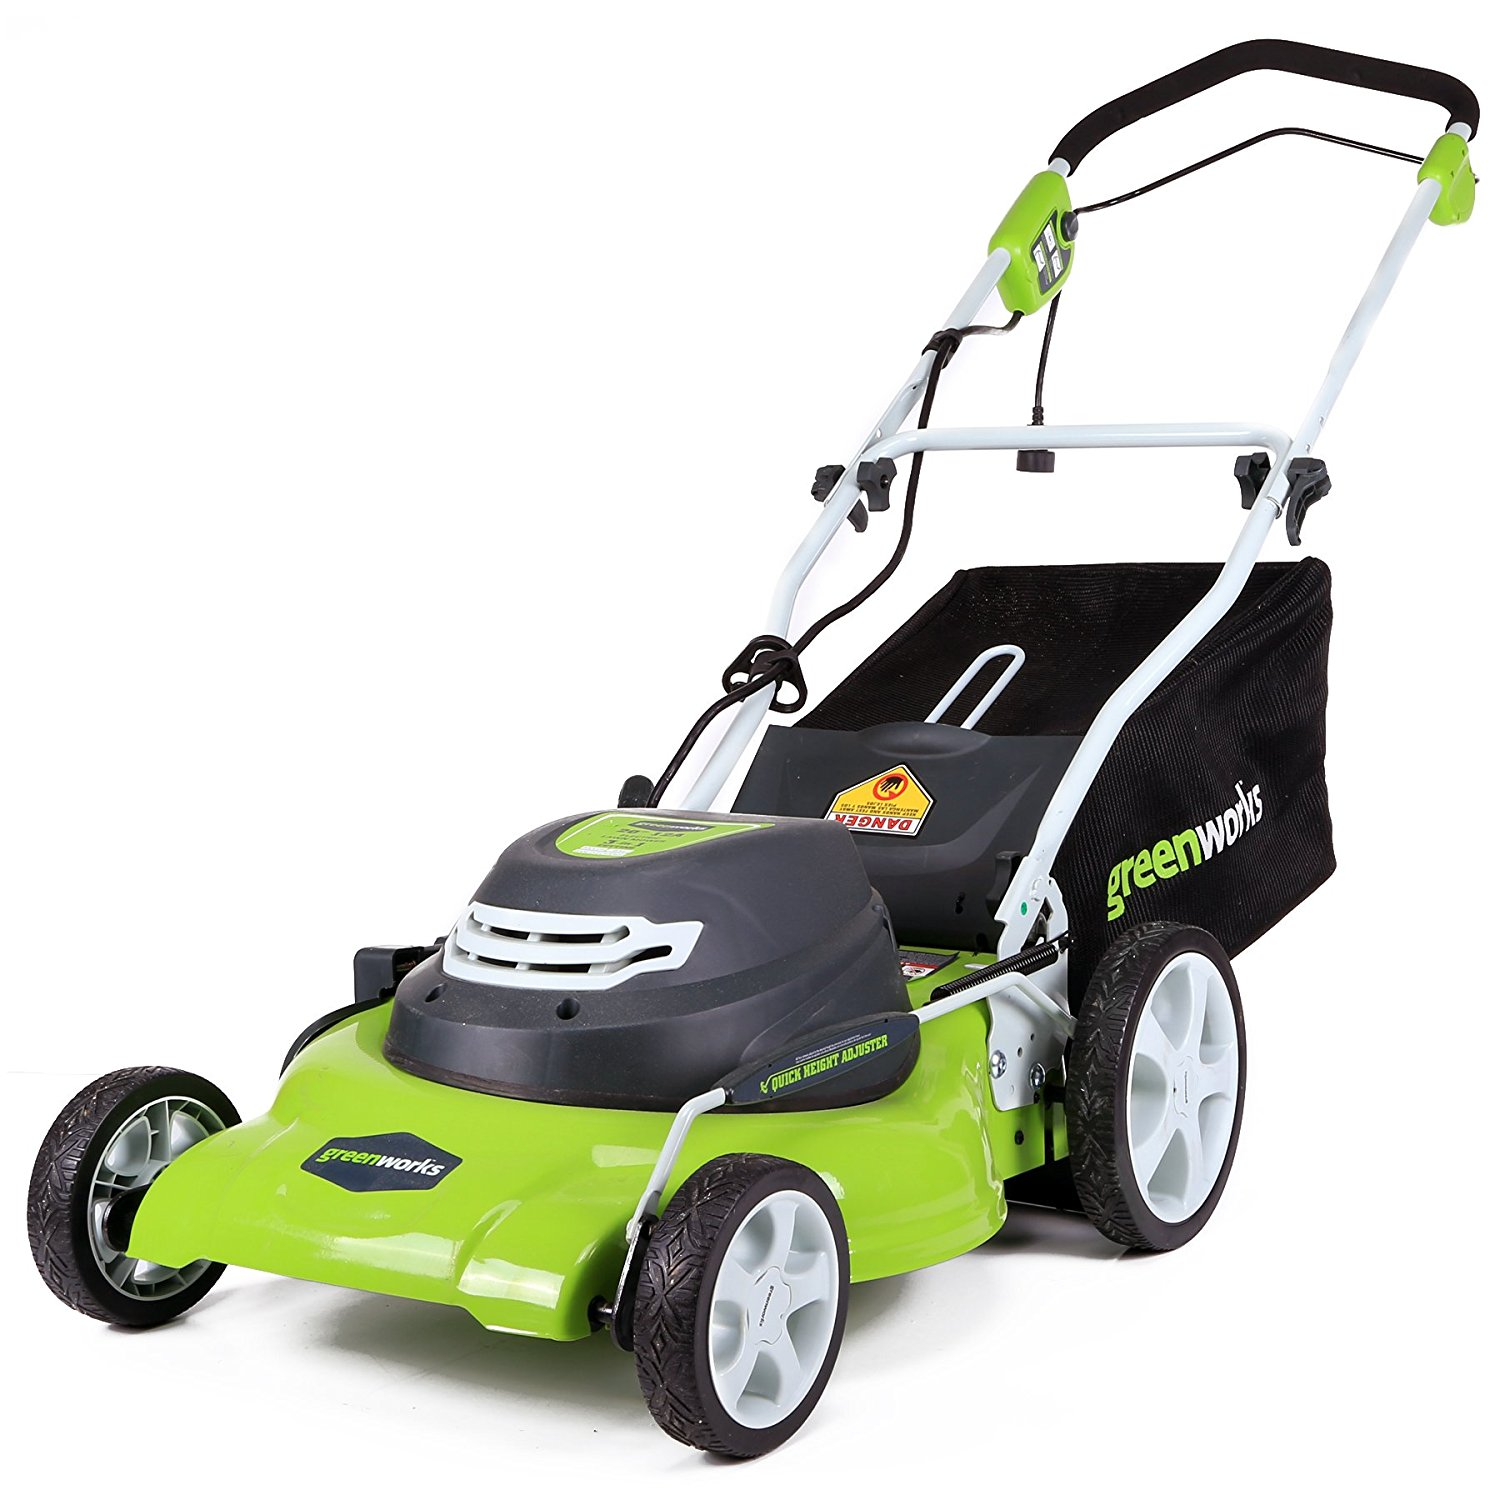 12 Amp Corded Electric Lawn Mower By GreenWorks